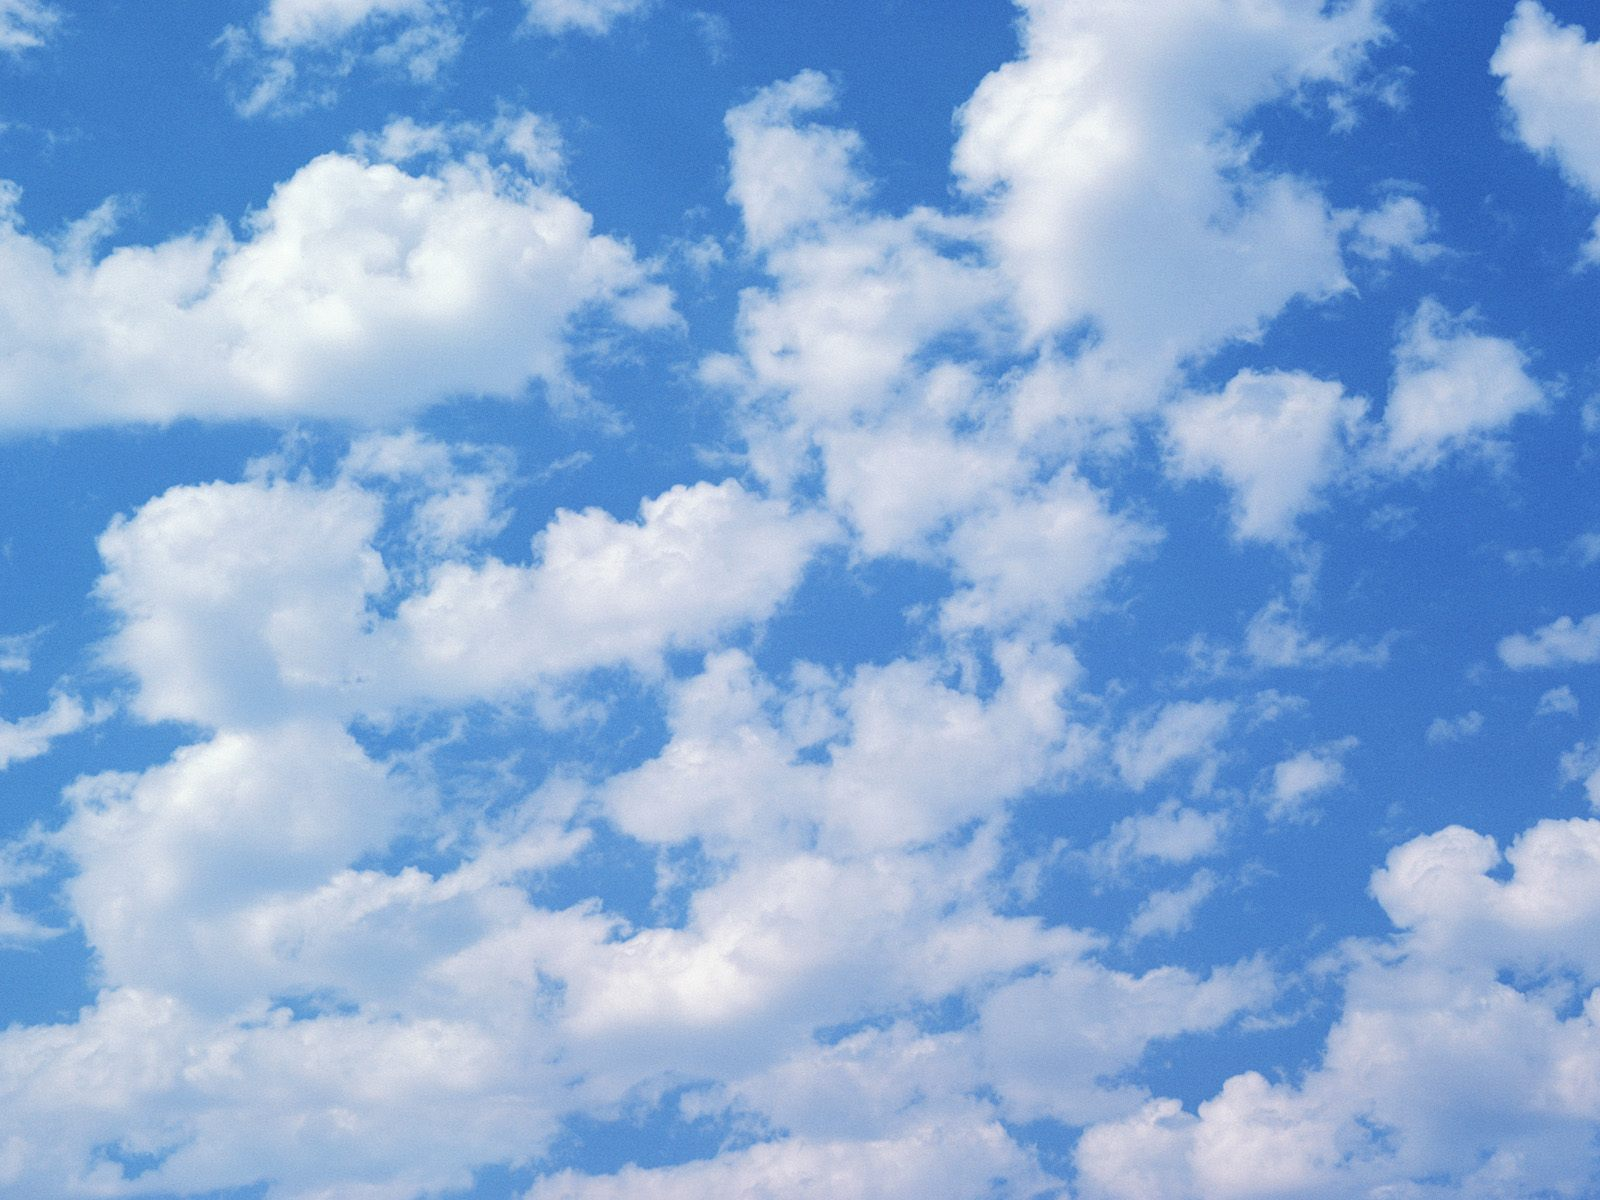 clouds wallpaper 1080p